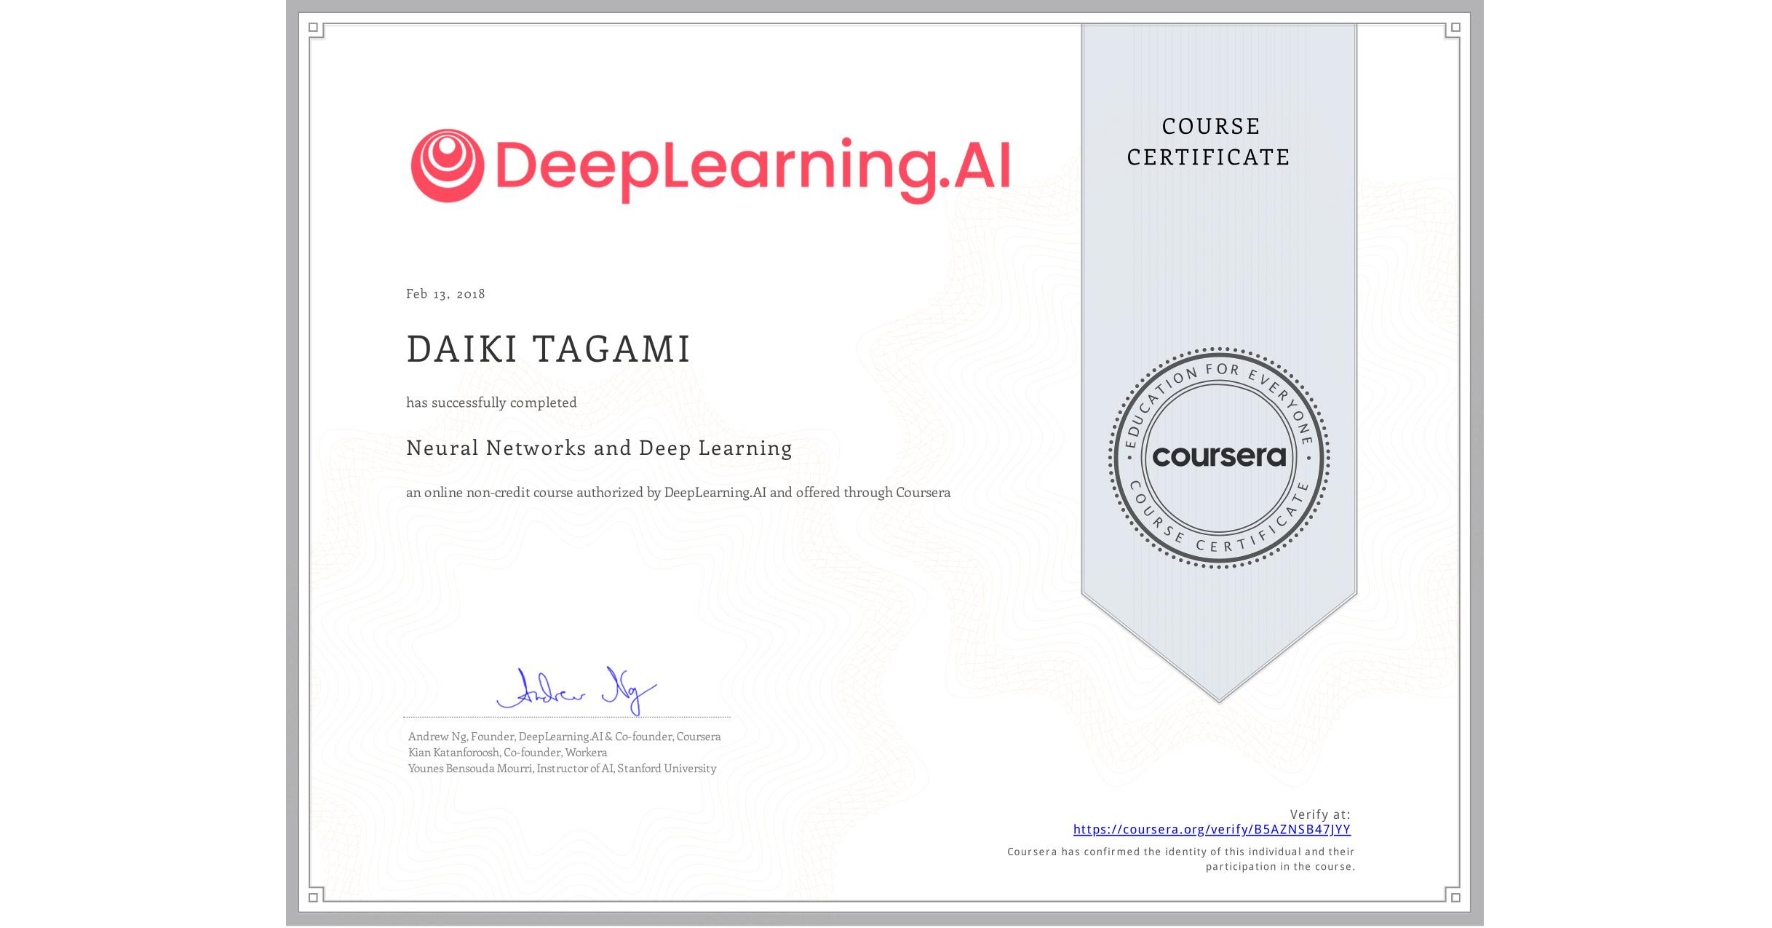 View certificate for DAIKI TAGAMI, Neural Networks and Deep Learning, an online non-credit course authorized by DeepLearning.AI and offered through Coursera